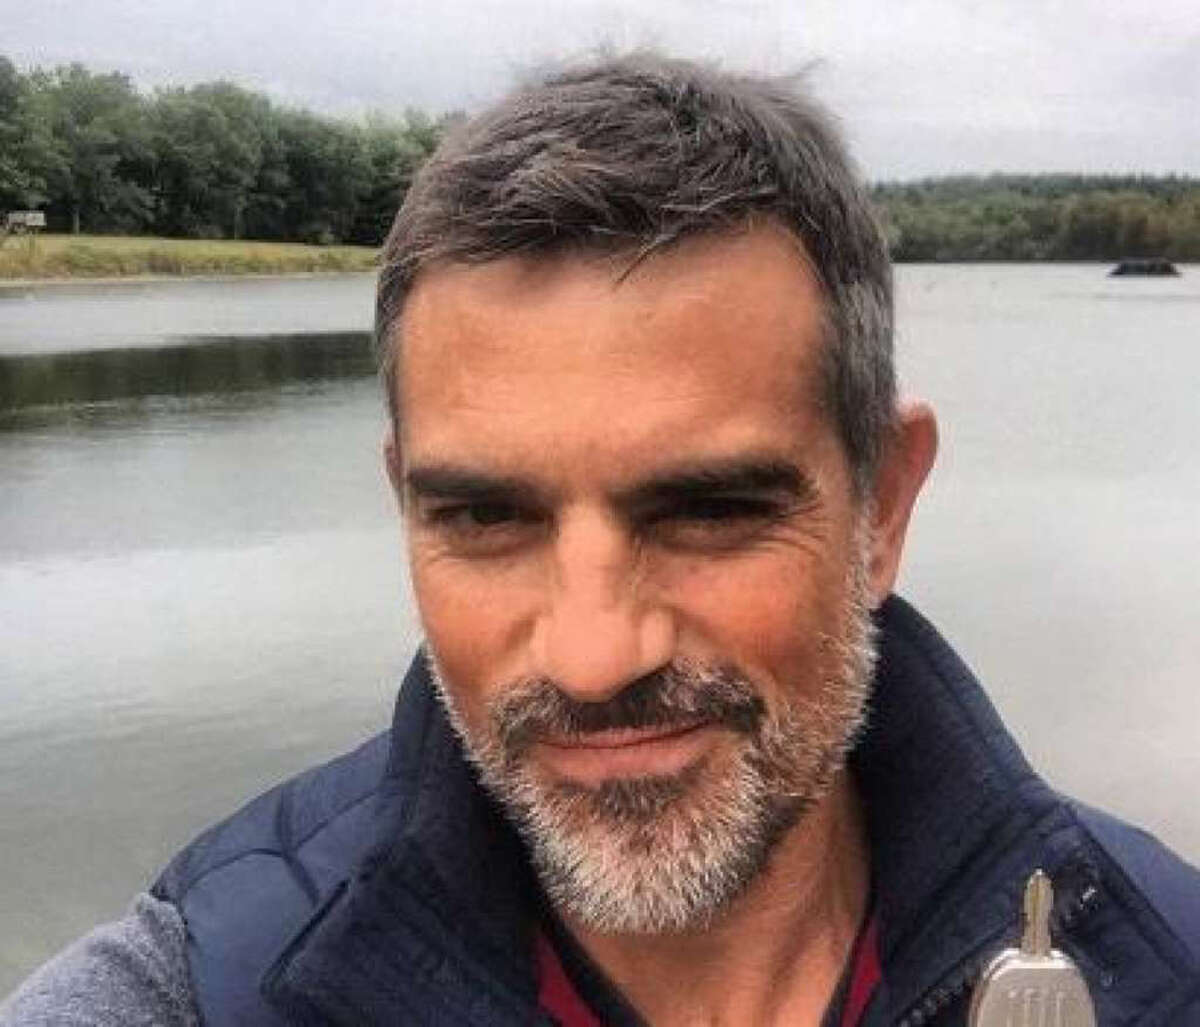 Sources say DNA samples have been taken from missing New Canaan woman Jennifer Dulos' estranged husband, Fotis Dulos. Contributed photo